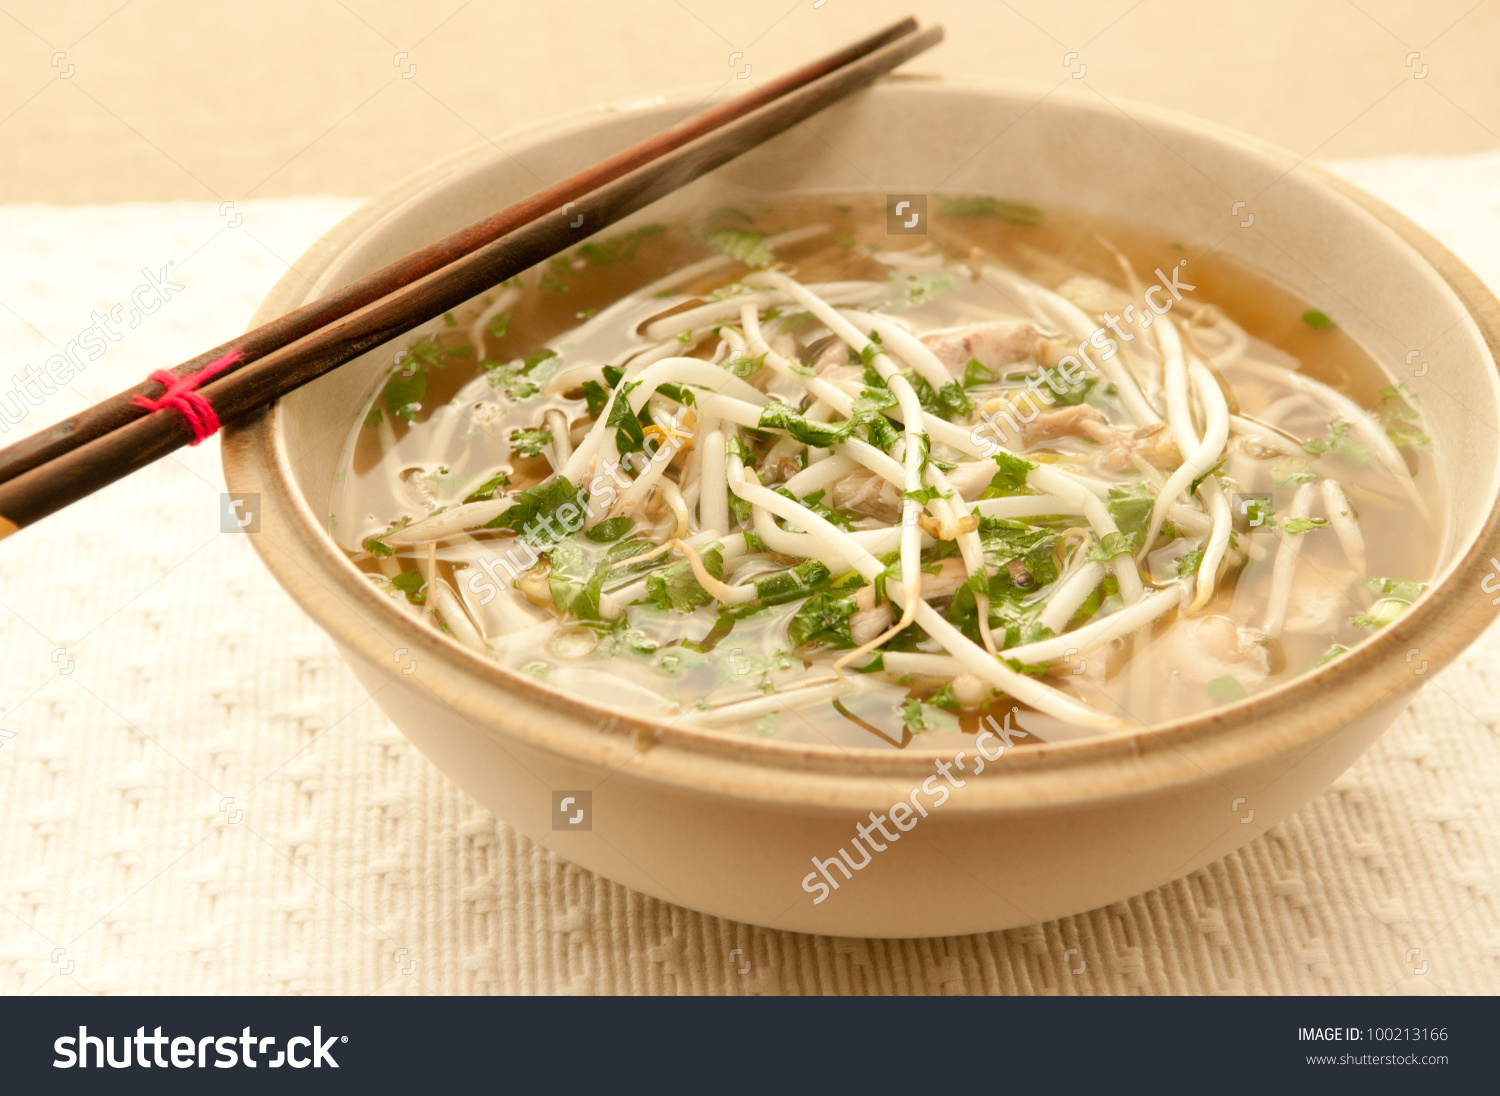 Vietnamese Pho Soup, An Ethnic Meal Of Chicken Soup, Broth, Bean.